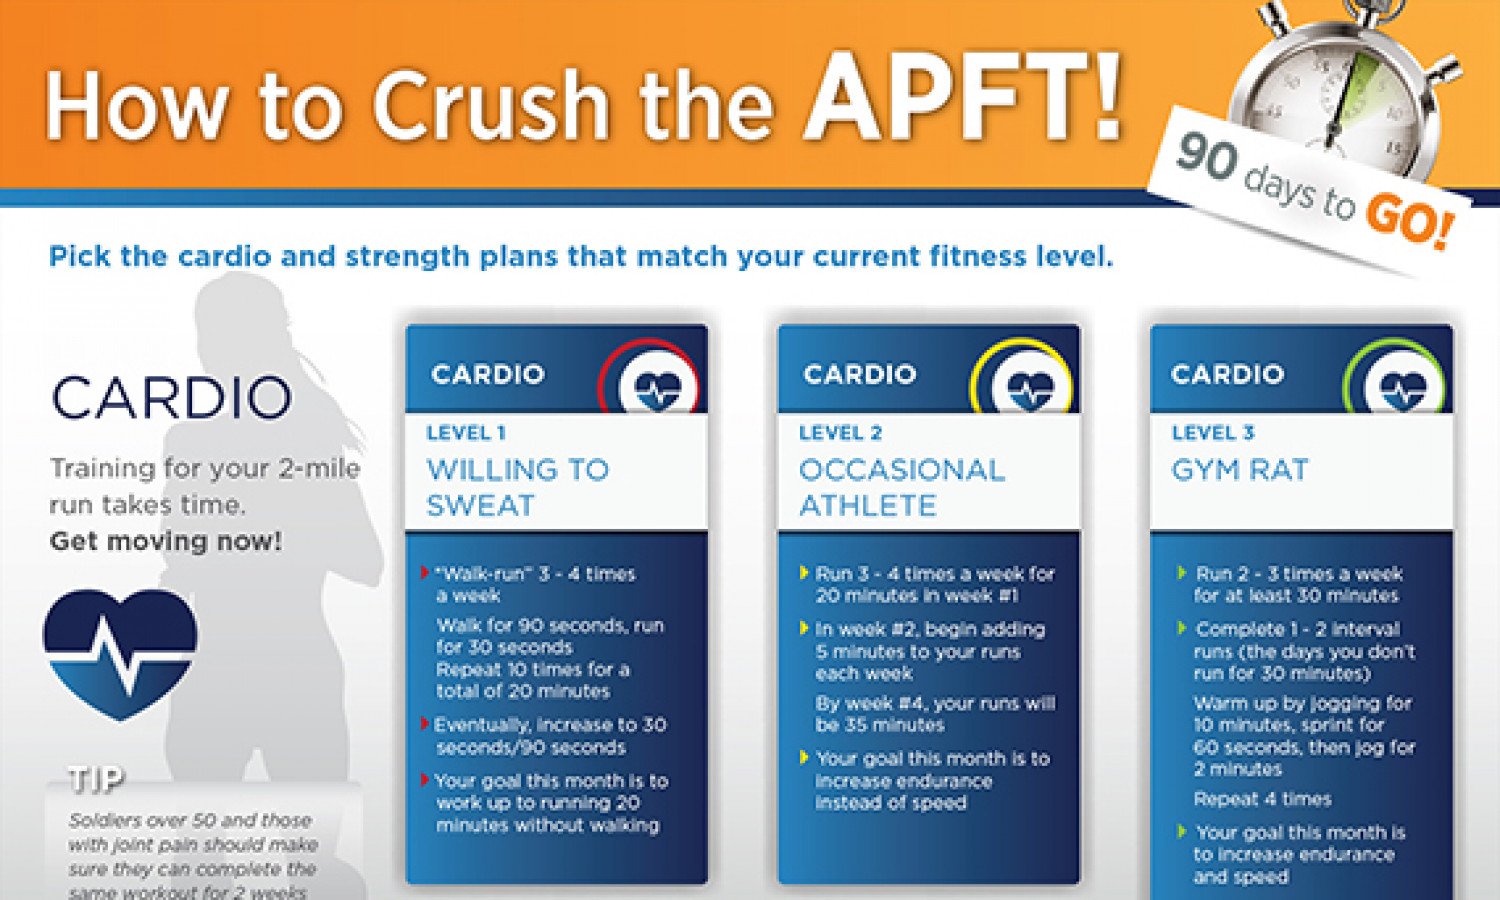 How To Crush the APFT! 90 Days to Go! Infographic